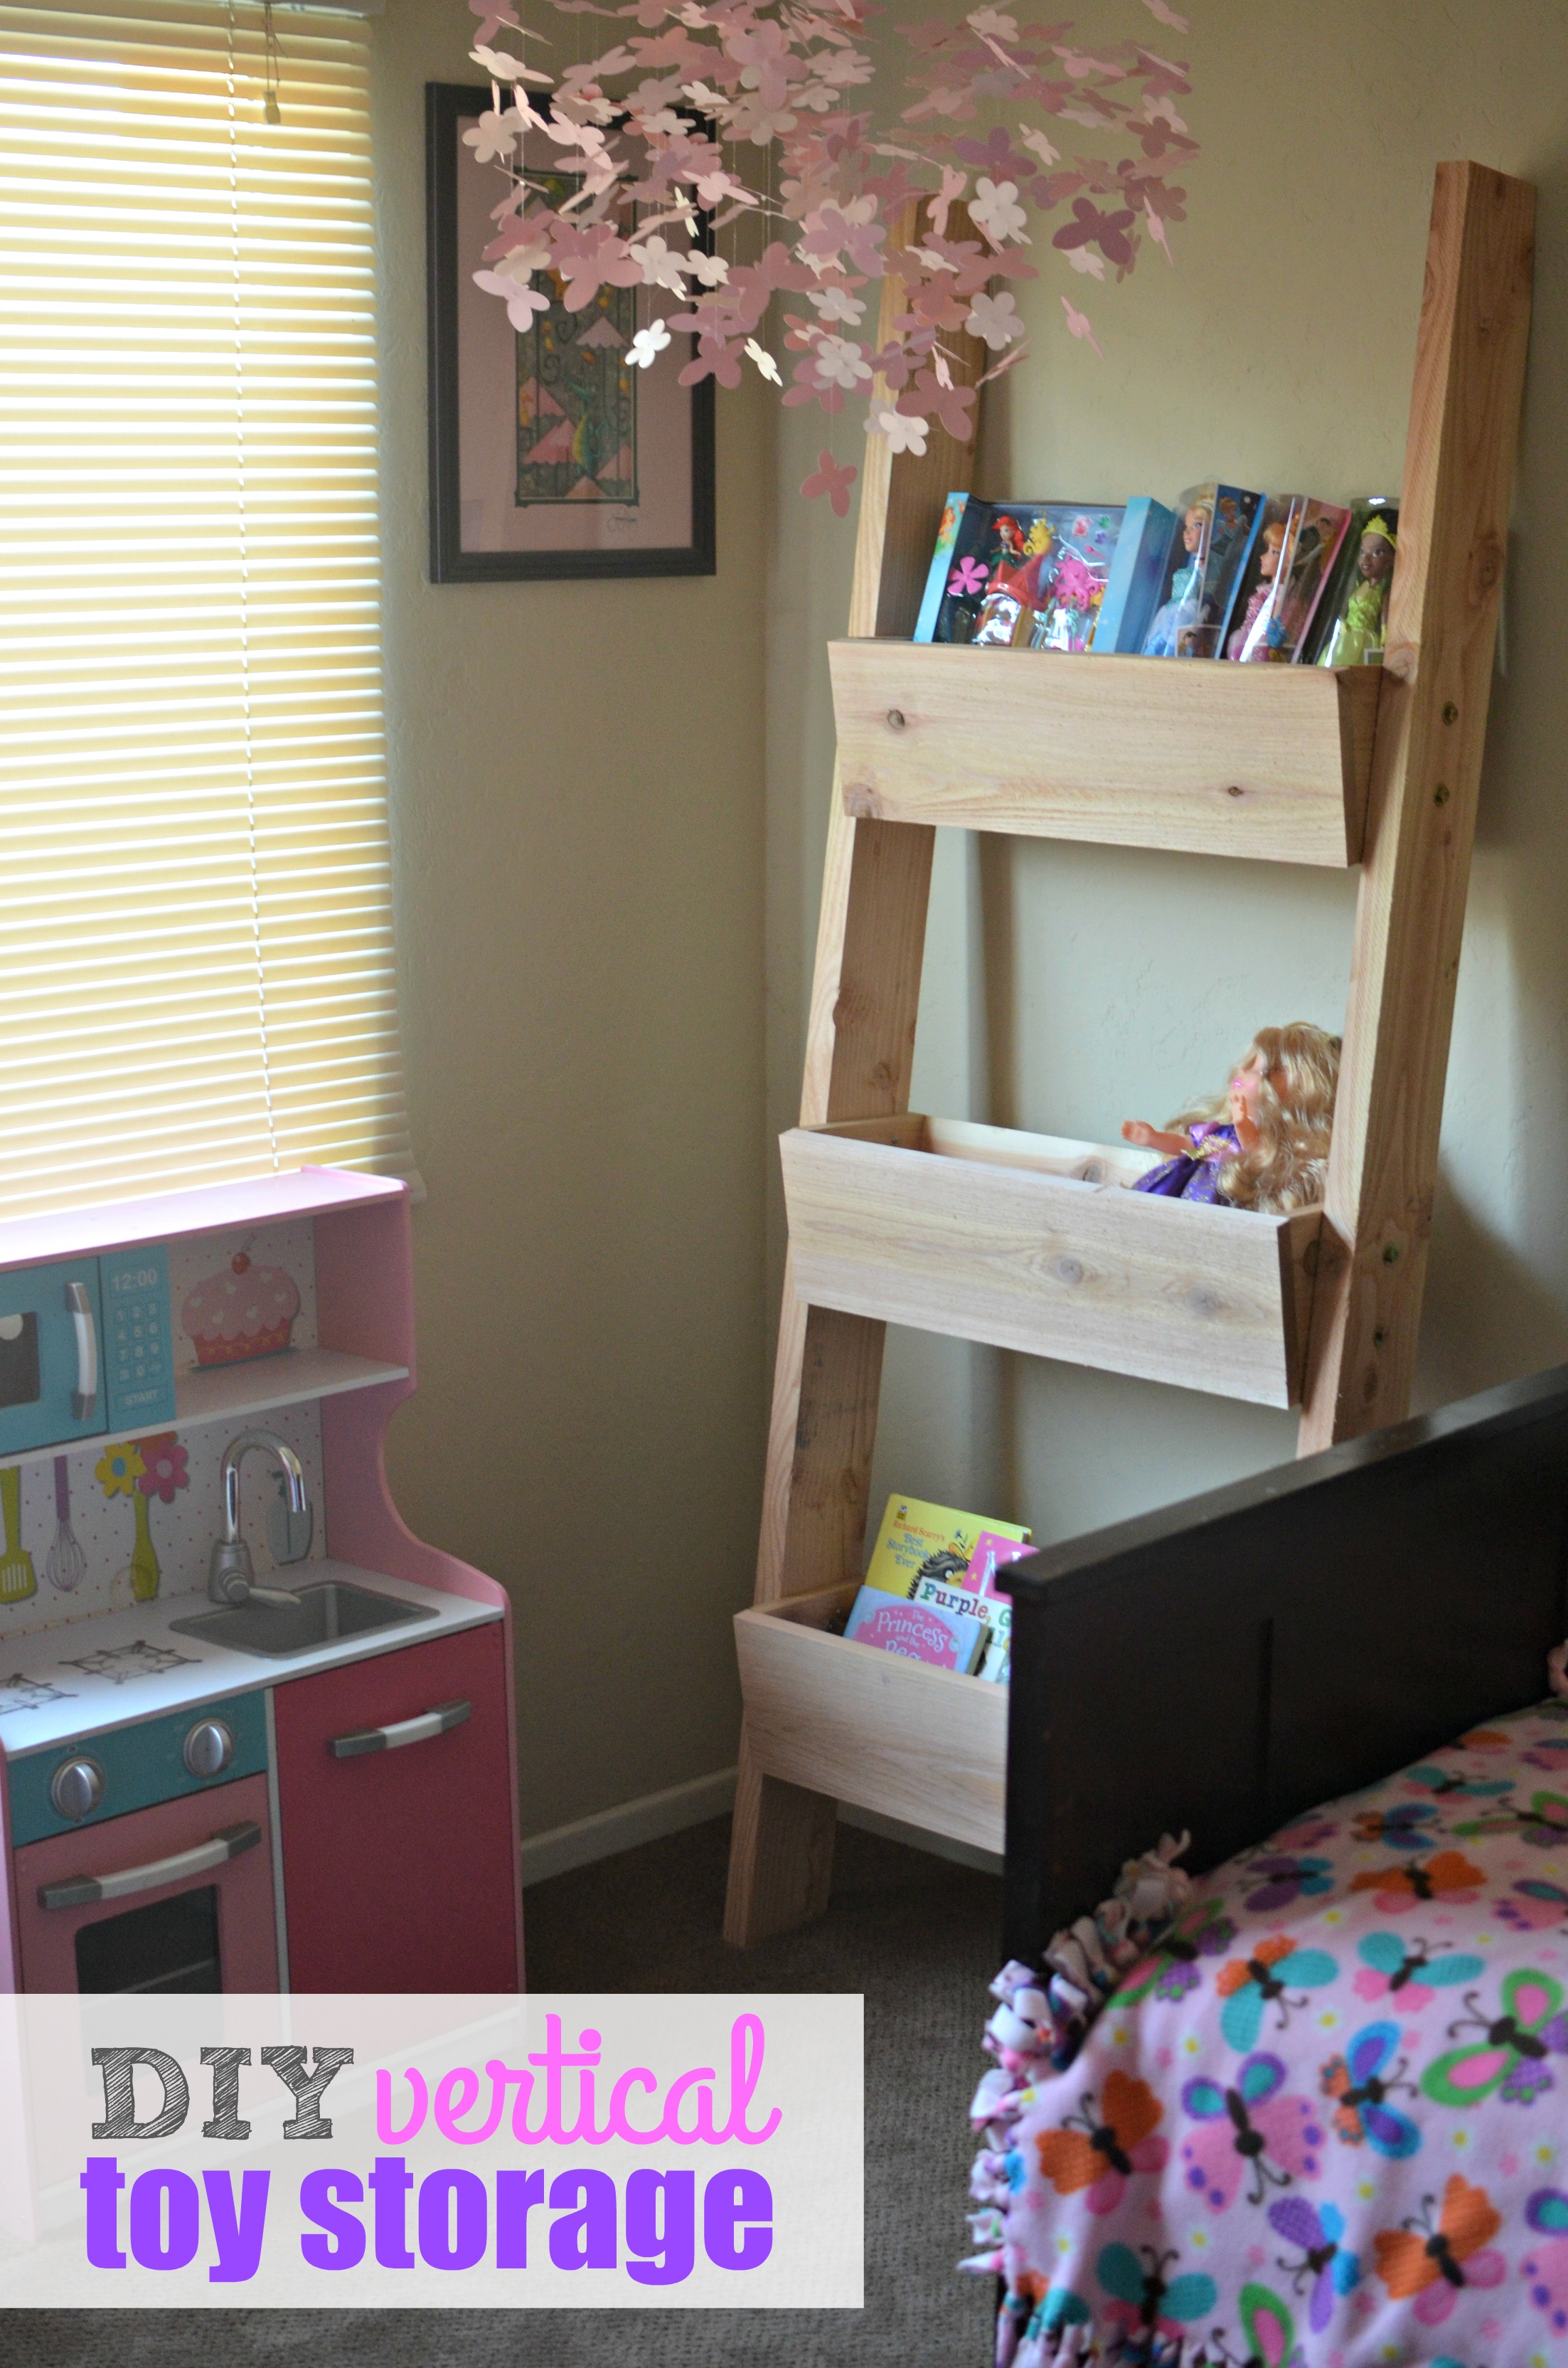 DIY Vertical Toy Storage Tutorial